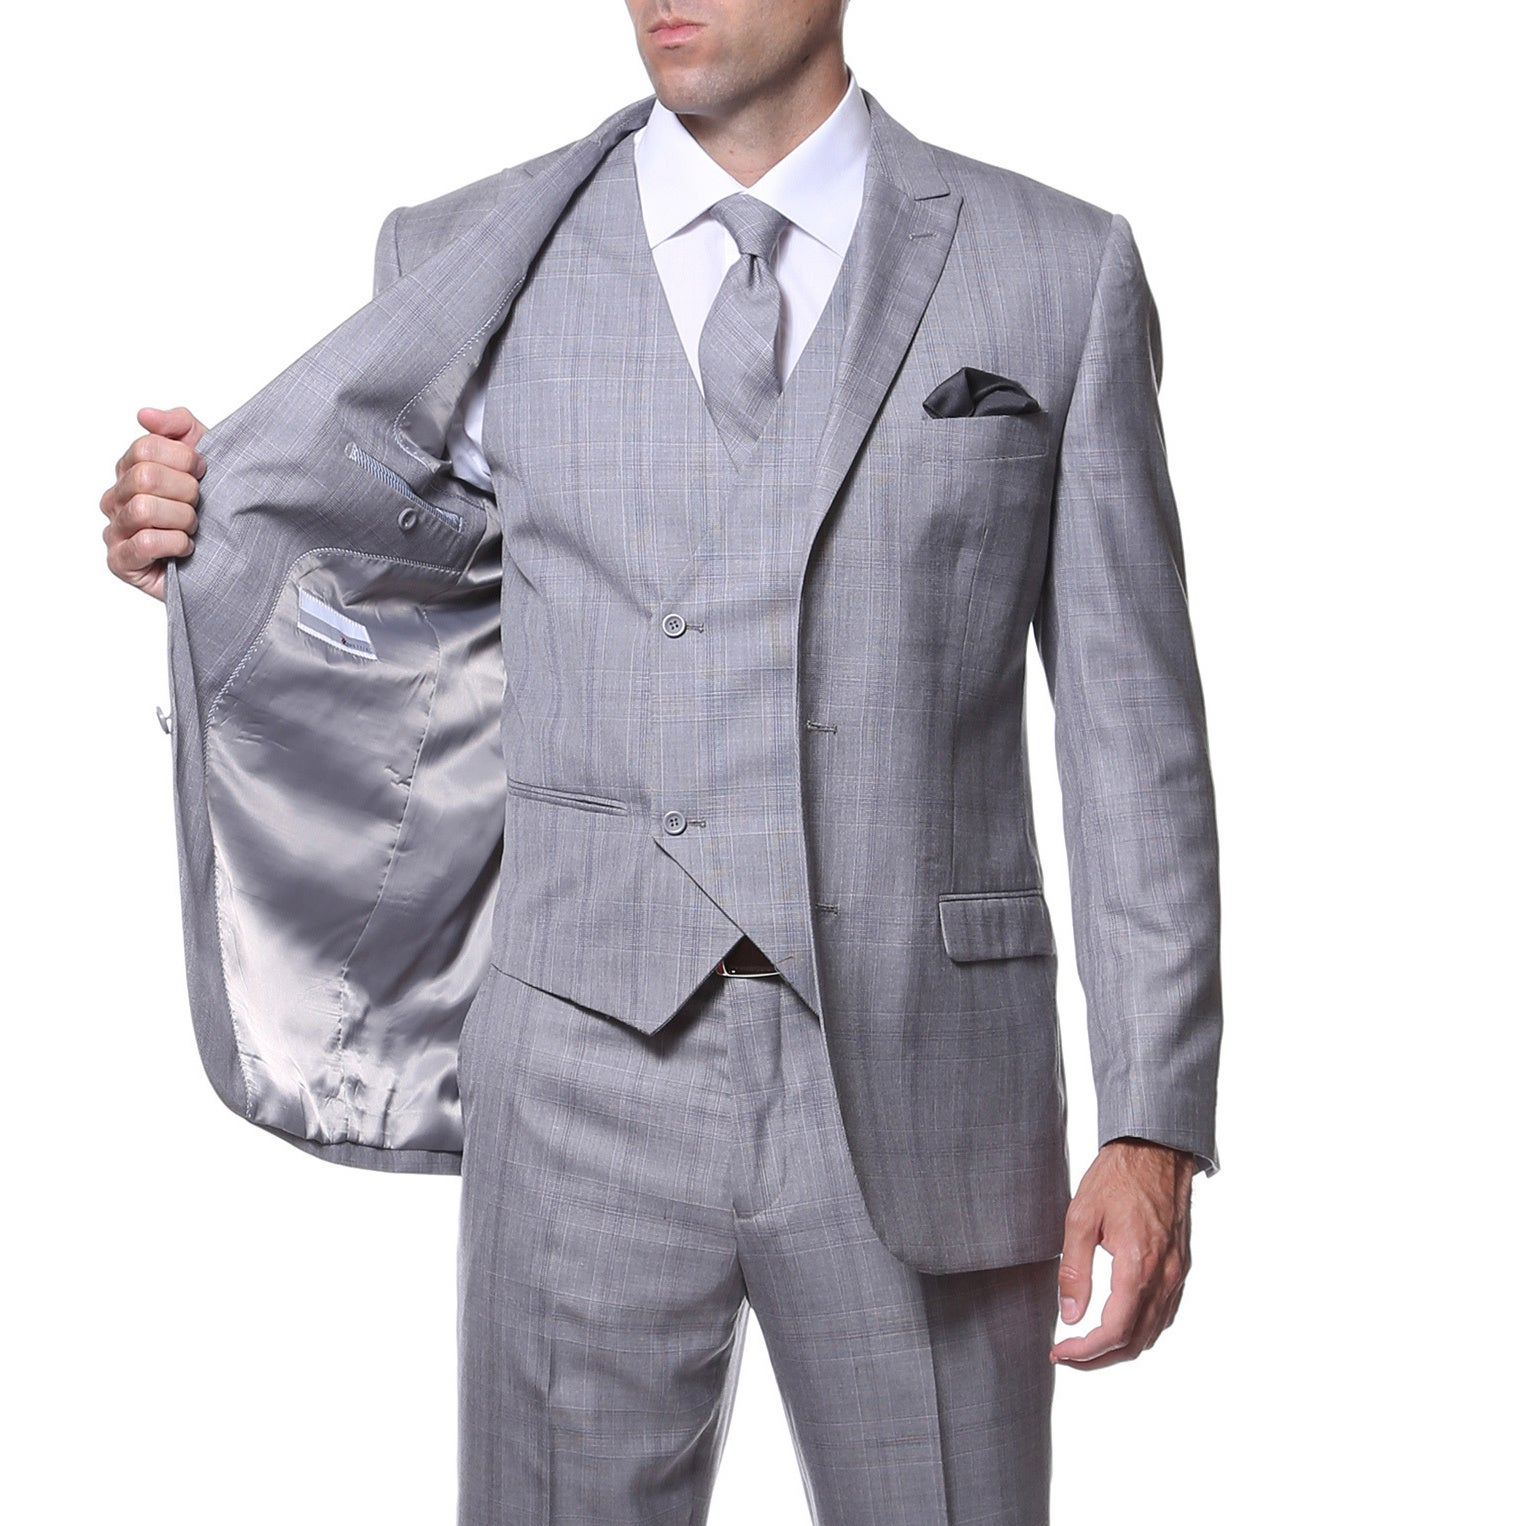 b1b80c93b49f Shop Zonettie by Ferrecci Men's Slim Fit Grey and Silver Plaid  Double-breasted 3-piece Vested Suit - Ships To Canada - Overstock - 9214704